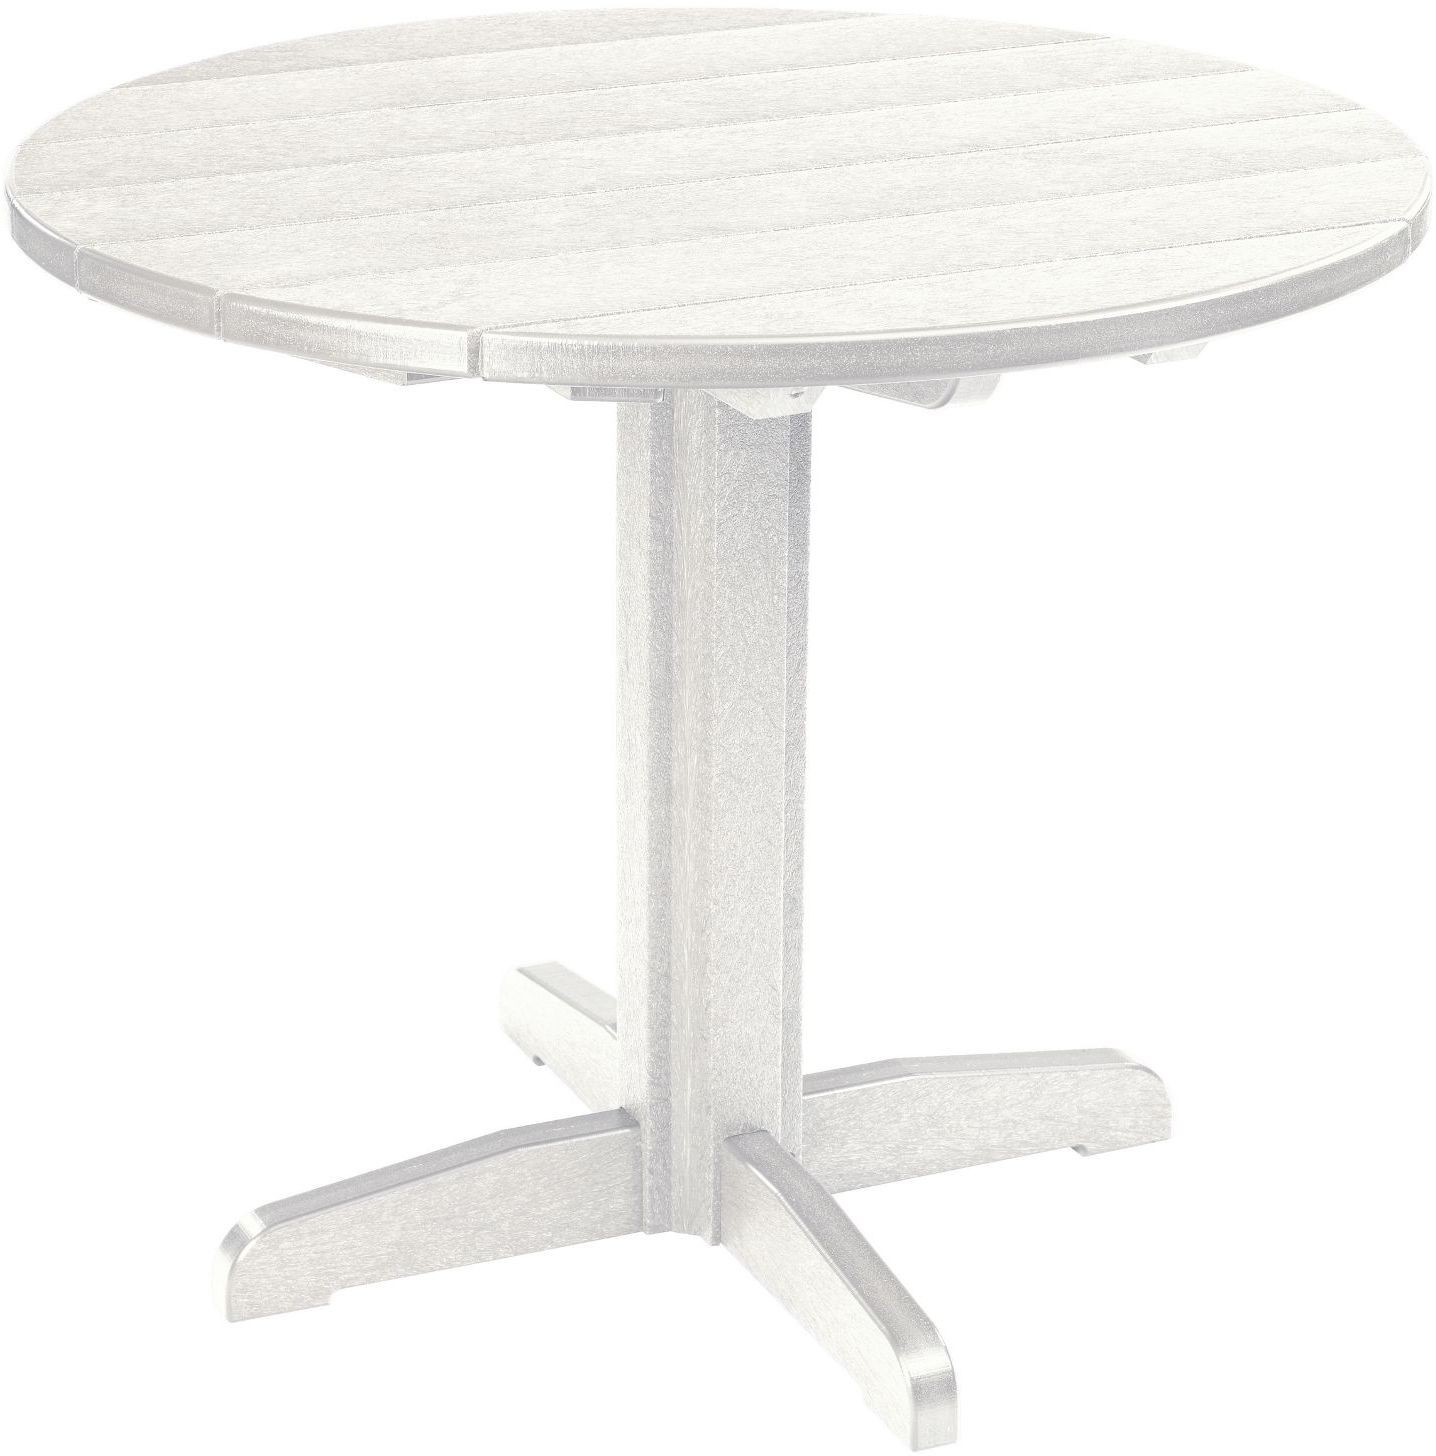 generations white 37 round pedestal dining table tt02 tb12 02 cr